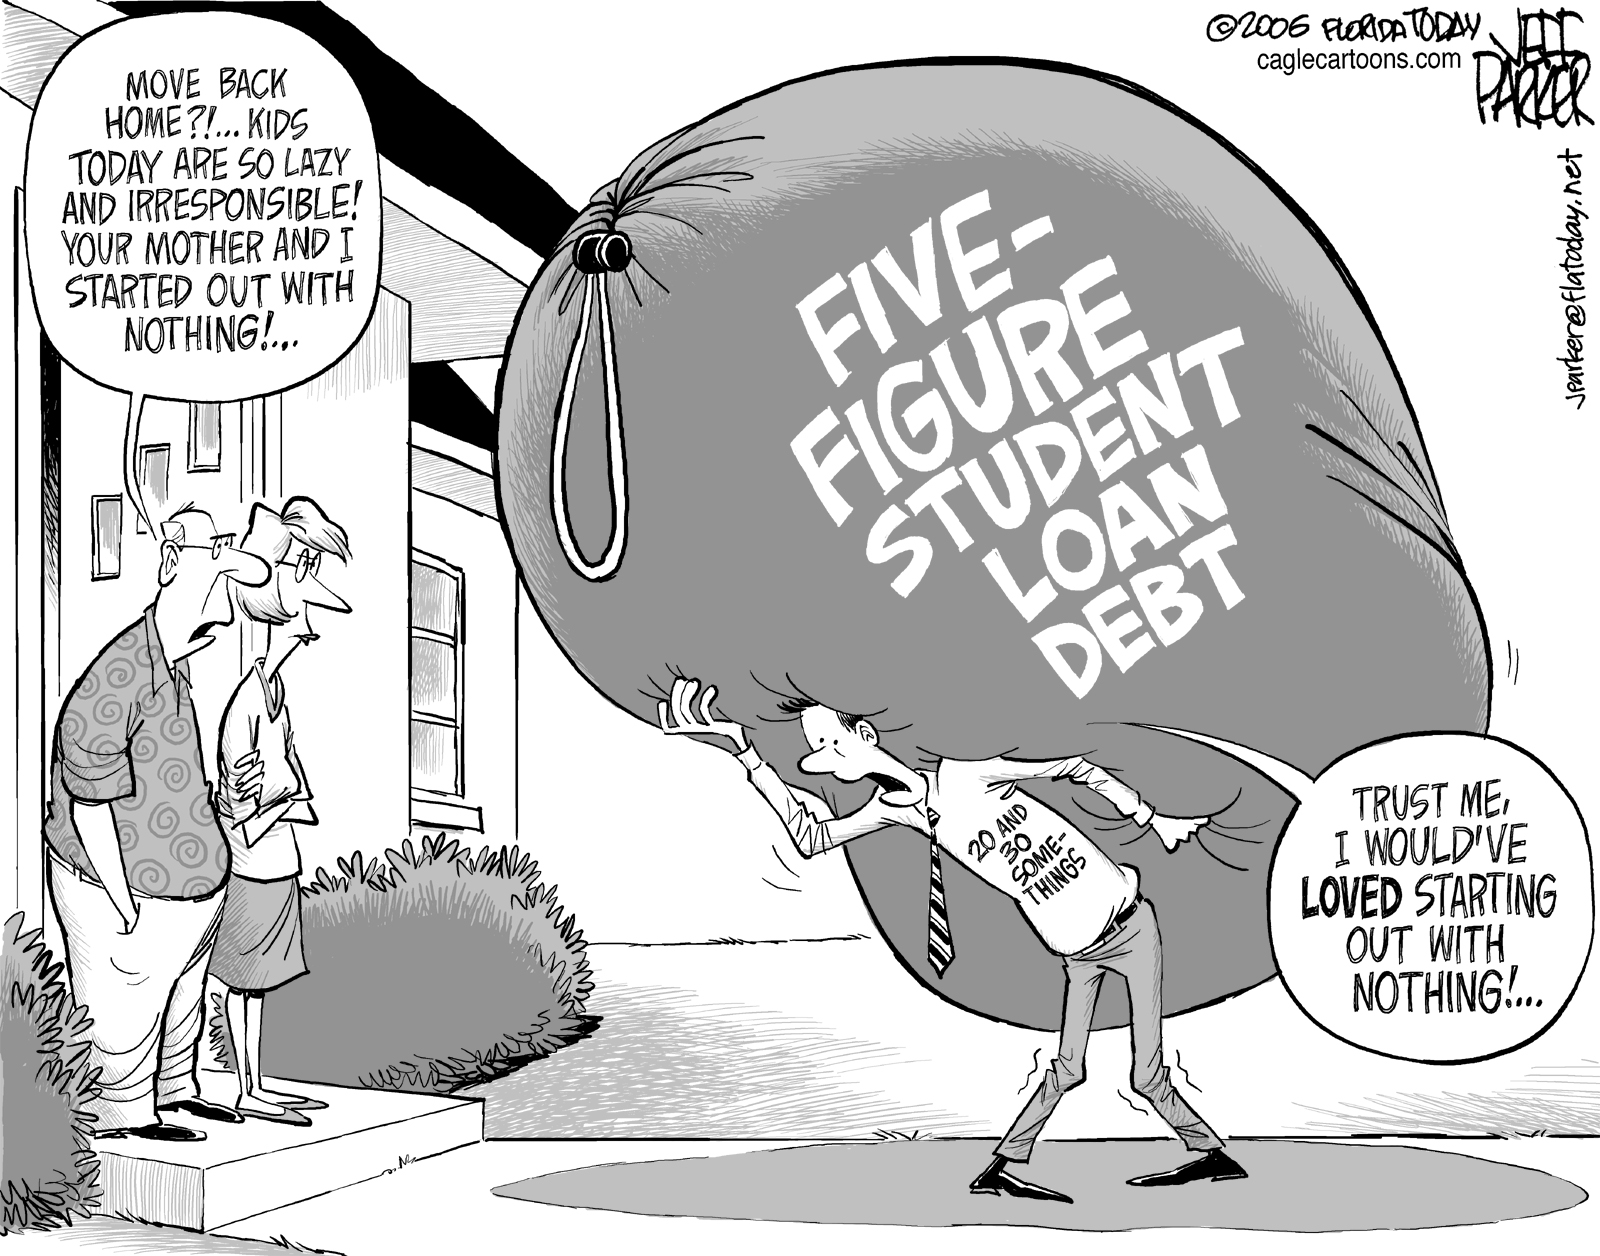 jobsanger: Deal On Student Loans? Maybe